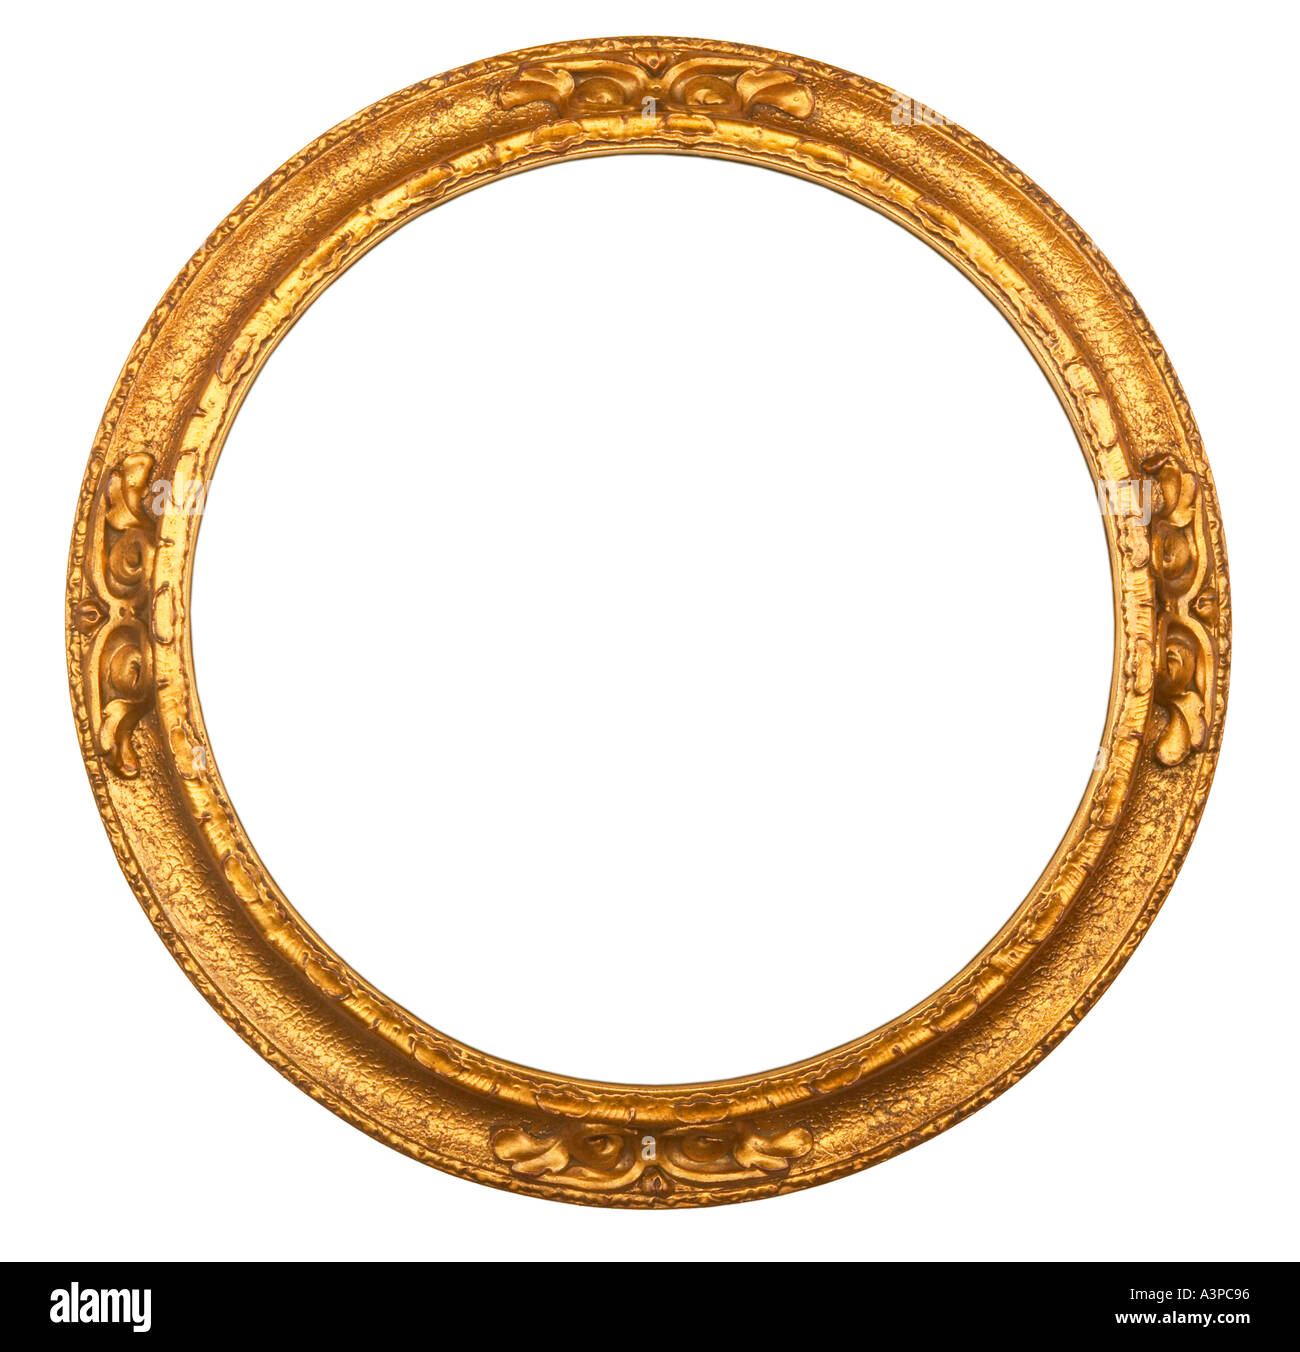 CIRCULAR GOLD GILT ANTIQUE PICTURE FRAME ON WHITE BACKGROUND - Stock Image